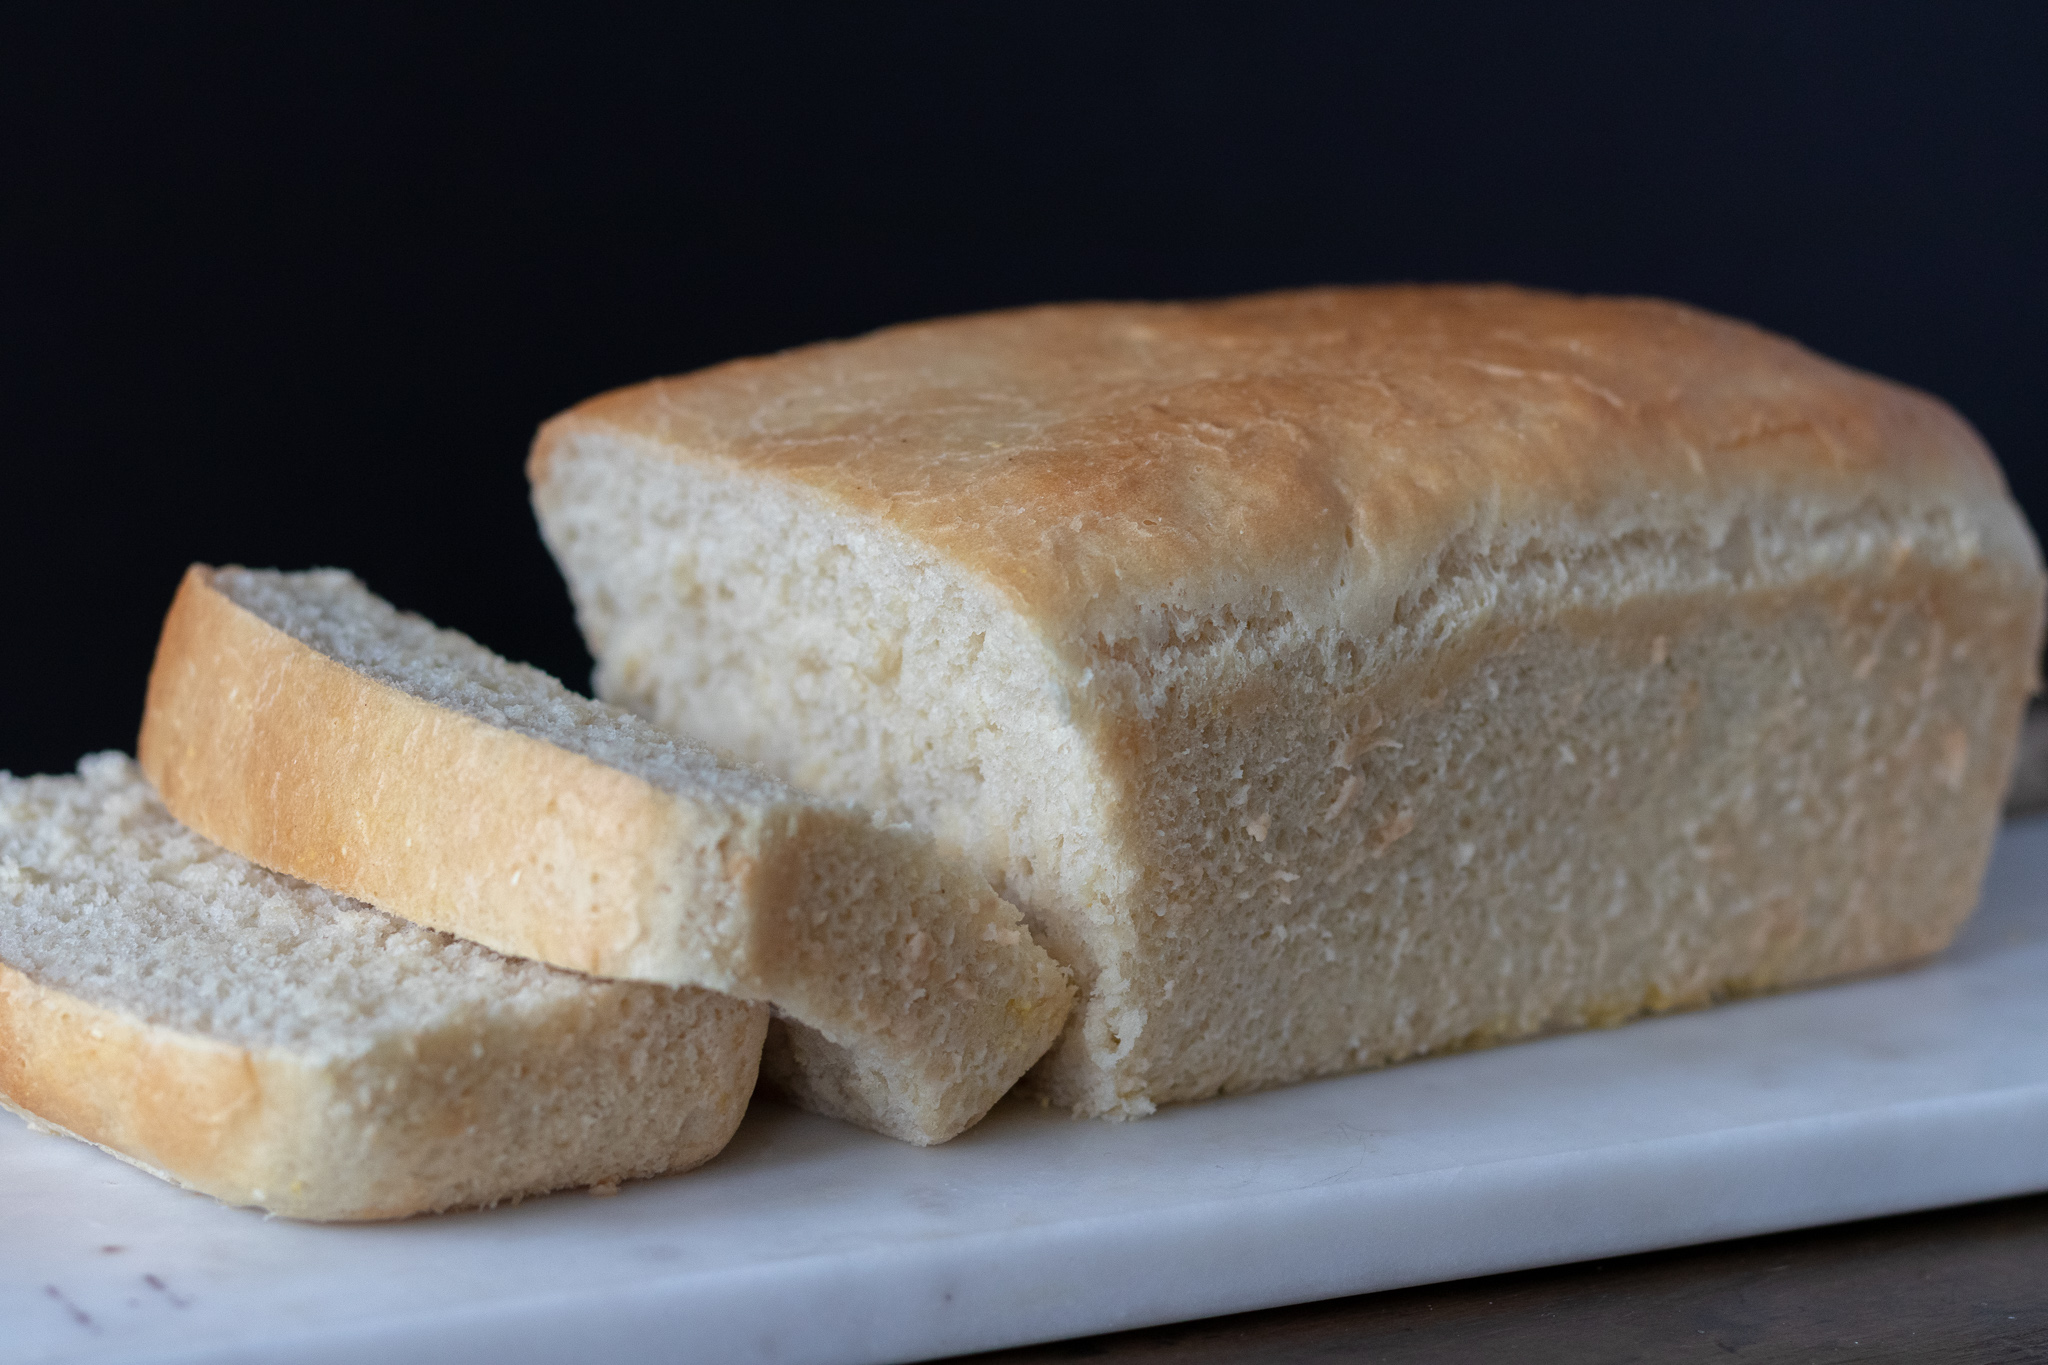 """I love to smell fresh bread baking. Carbs are my weakness. I actually have a necklace that I wear often that says """"carbs"""" with a heart engraved on it. So you can see my love for bread and all things carbs runs deep. I really, really love a nice big delicious sandwich on fresh baked bread! If you have never made loaf bread, let me tell you, you are missing out. You do not need a fancy bread machine to make easy and fresh baked bread either! Just a loaf pan and an oven. I am always amazed at just how many ingredients are in store bought bread, half of which I do not know what they are ,or how to pronounce. So I end up paying $5 or more for a loaf of vegan organic, healthier bread, which will be gone after my family of 6 make a sandwich. Homemade vegan bread is far cheaper, and much healthier than most store bought options, and its easy to make! You can easily double this recipe as well, and bake up two loaves at once if you are like us and have a lot of mouths to feed. It also freezes well so you could bake up 2 loaves,and just freeze one for later!!! So to all you other carb lovers out there, may your bread always be fresh, fluffy, and make you super happy!!"""